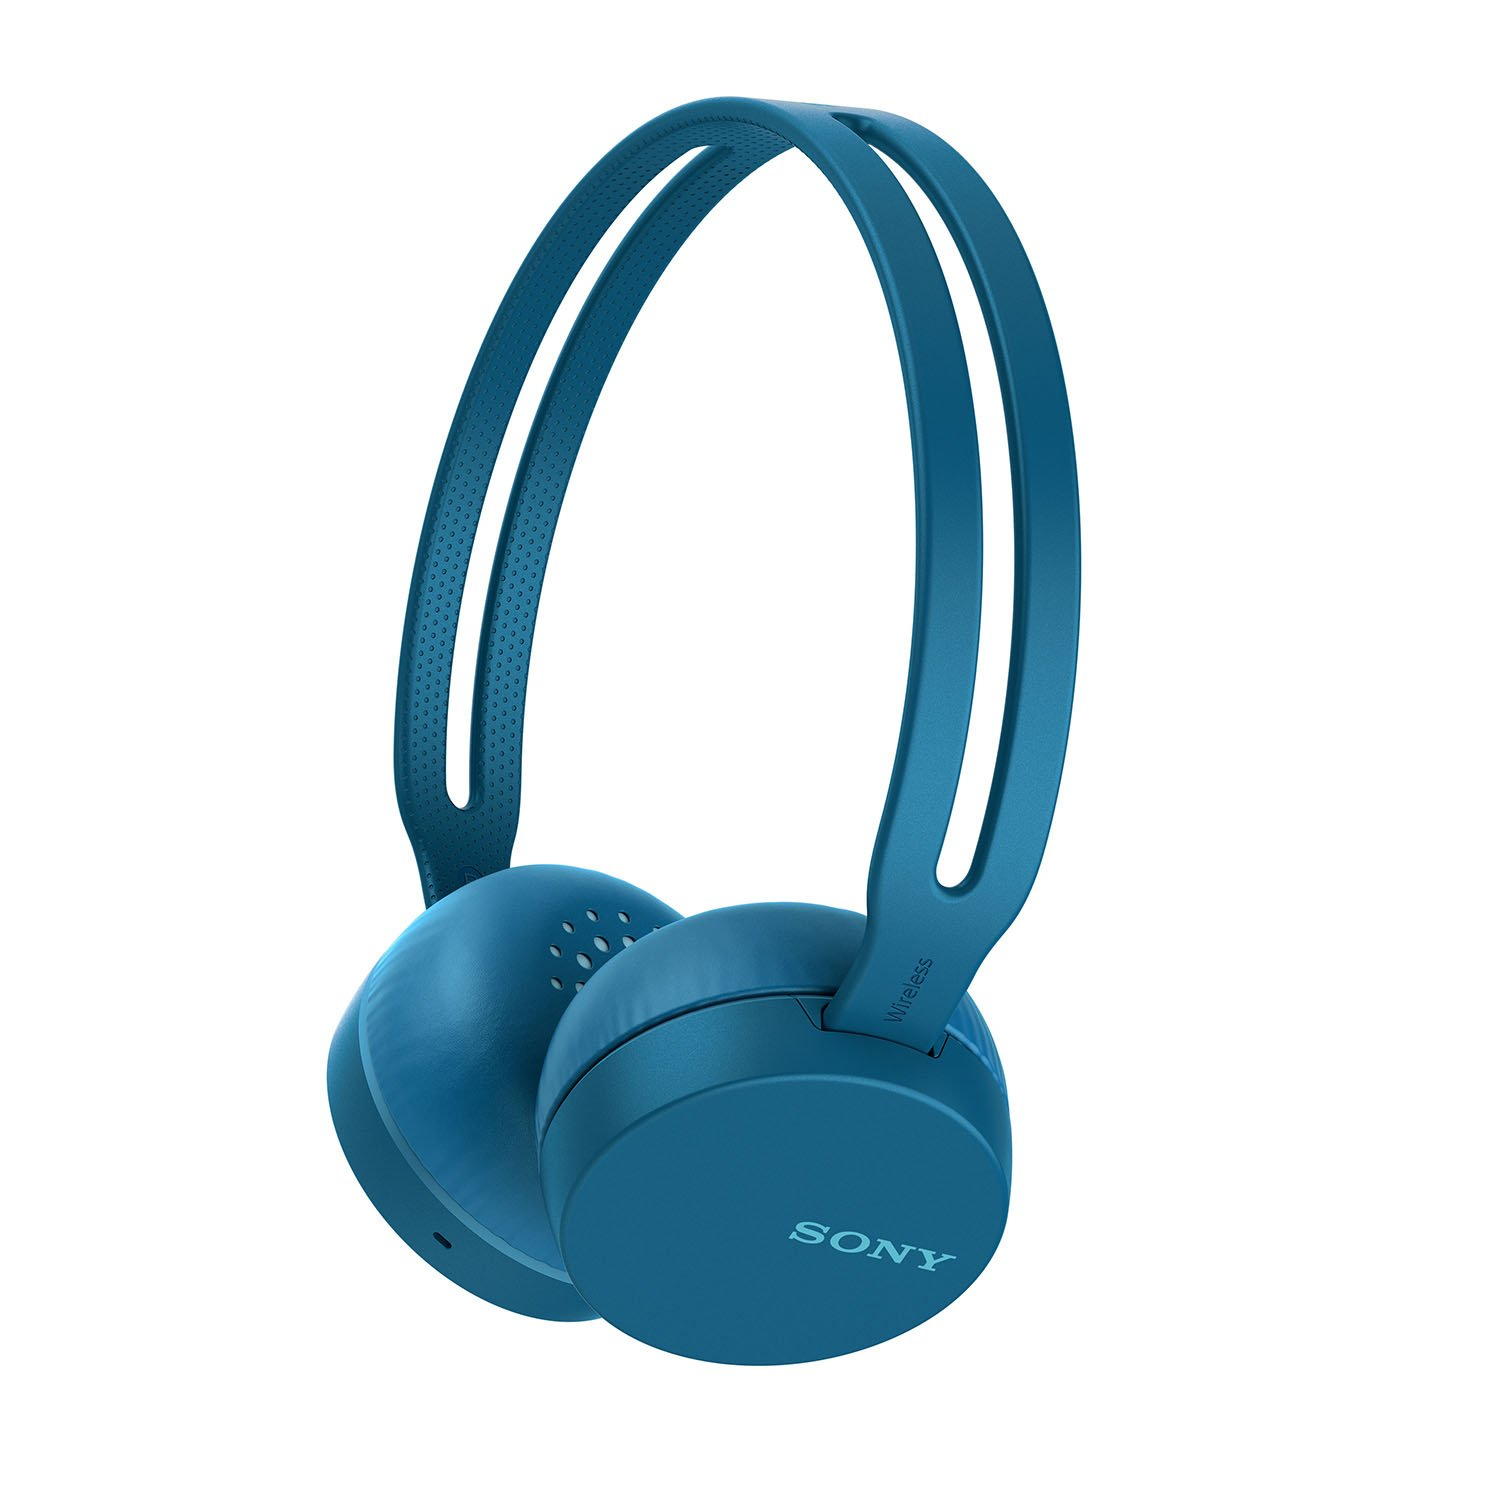 e9ee72b405d Sony WH-CH400 Wireless Headphones: Amazon.in: Electronics